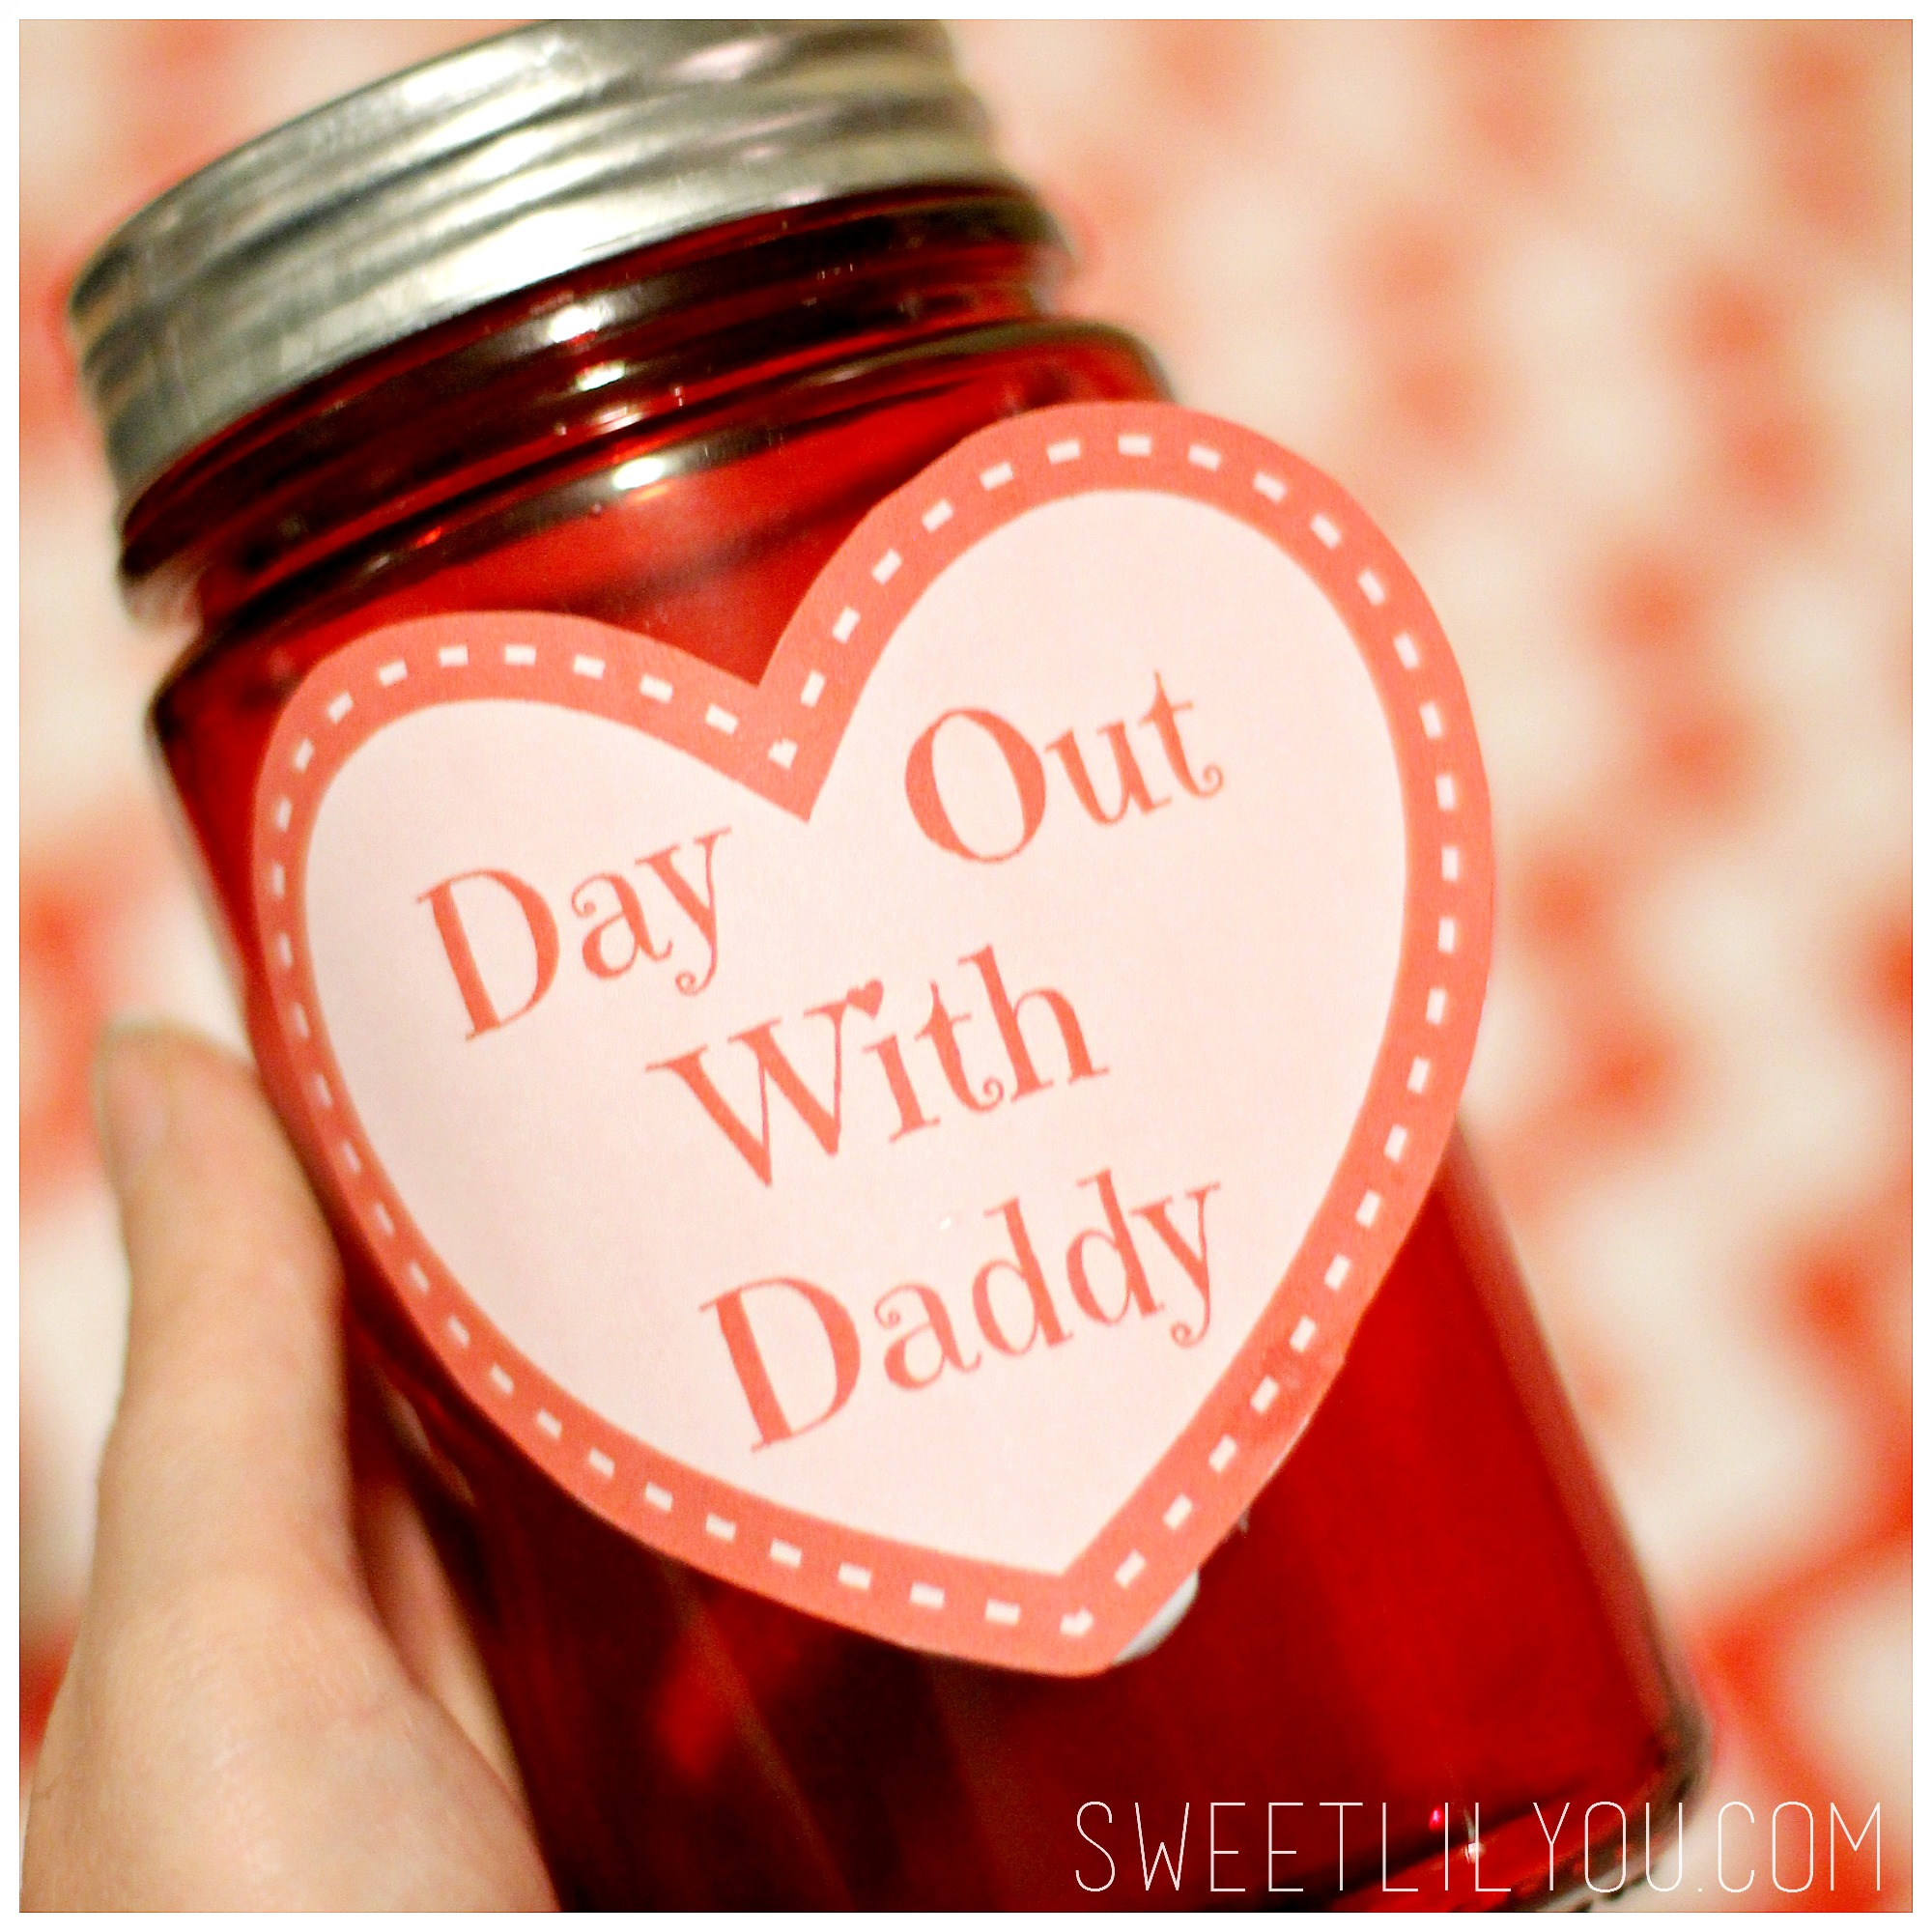 Day Out With Daddy Jar Valentines Day Gift For Dad Sweet Lil You